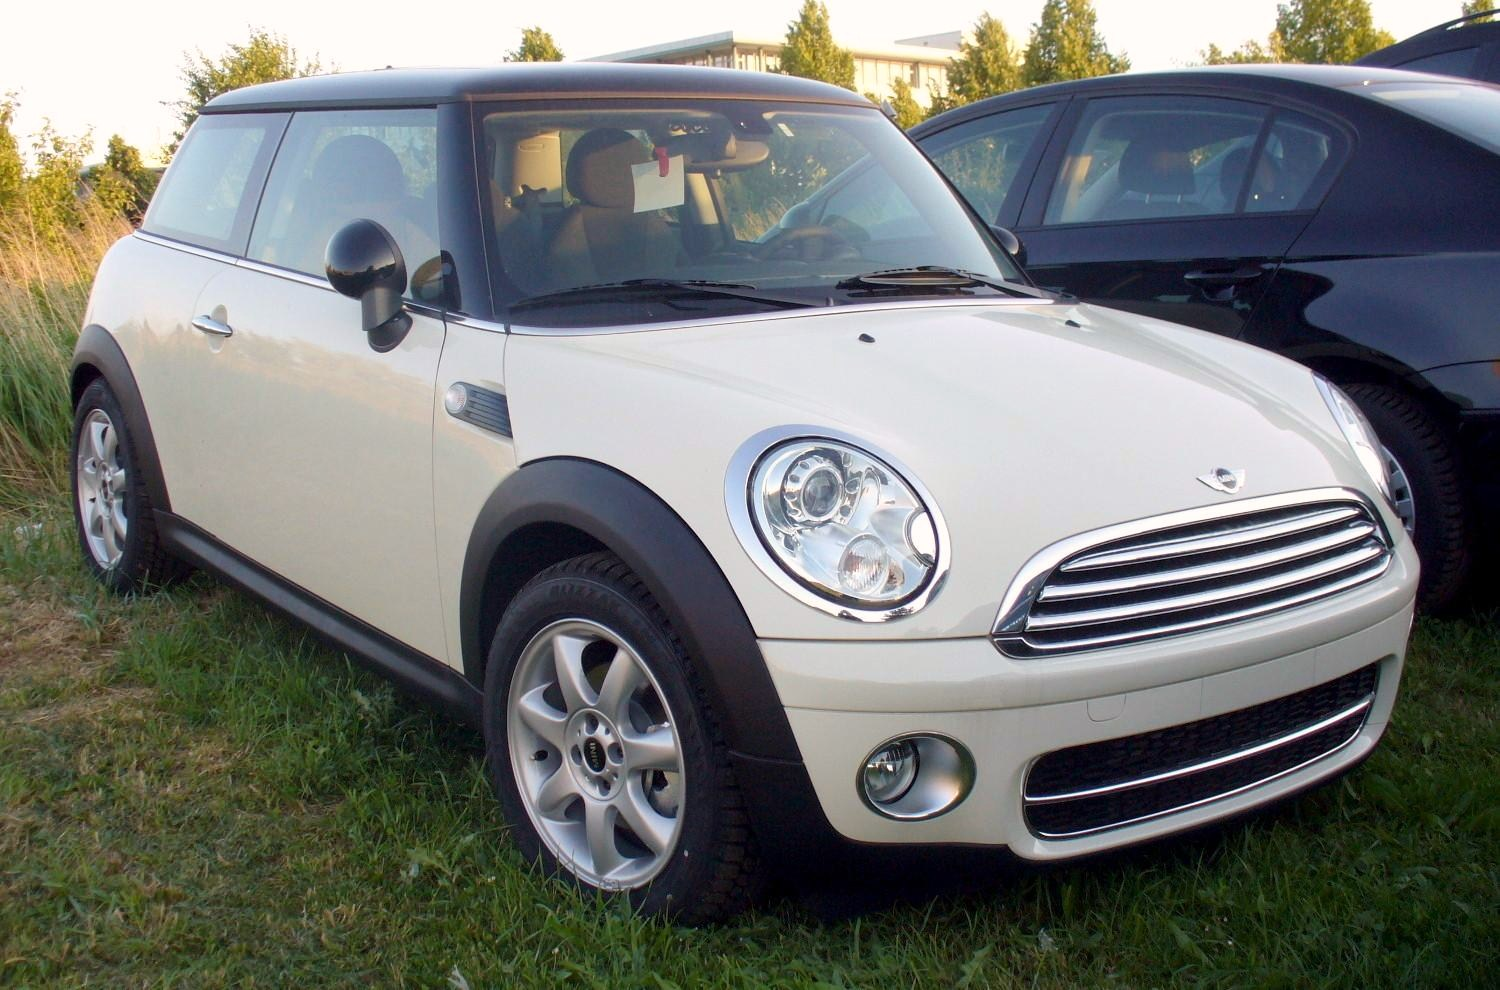 file mini r56 cooper d pepperwhite jpg wikipedia. Black Bedroom Furniture Sets. Home Design Ideas